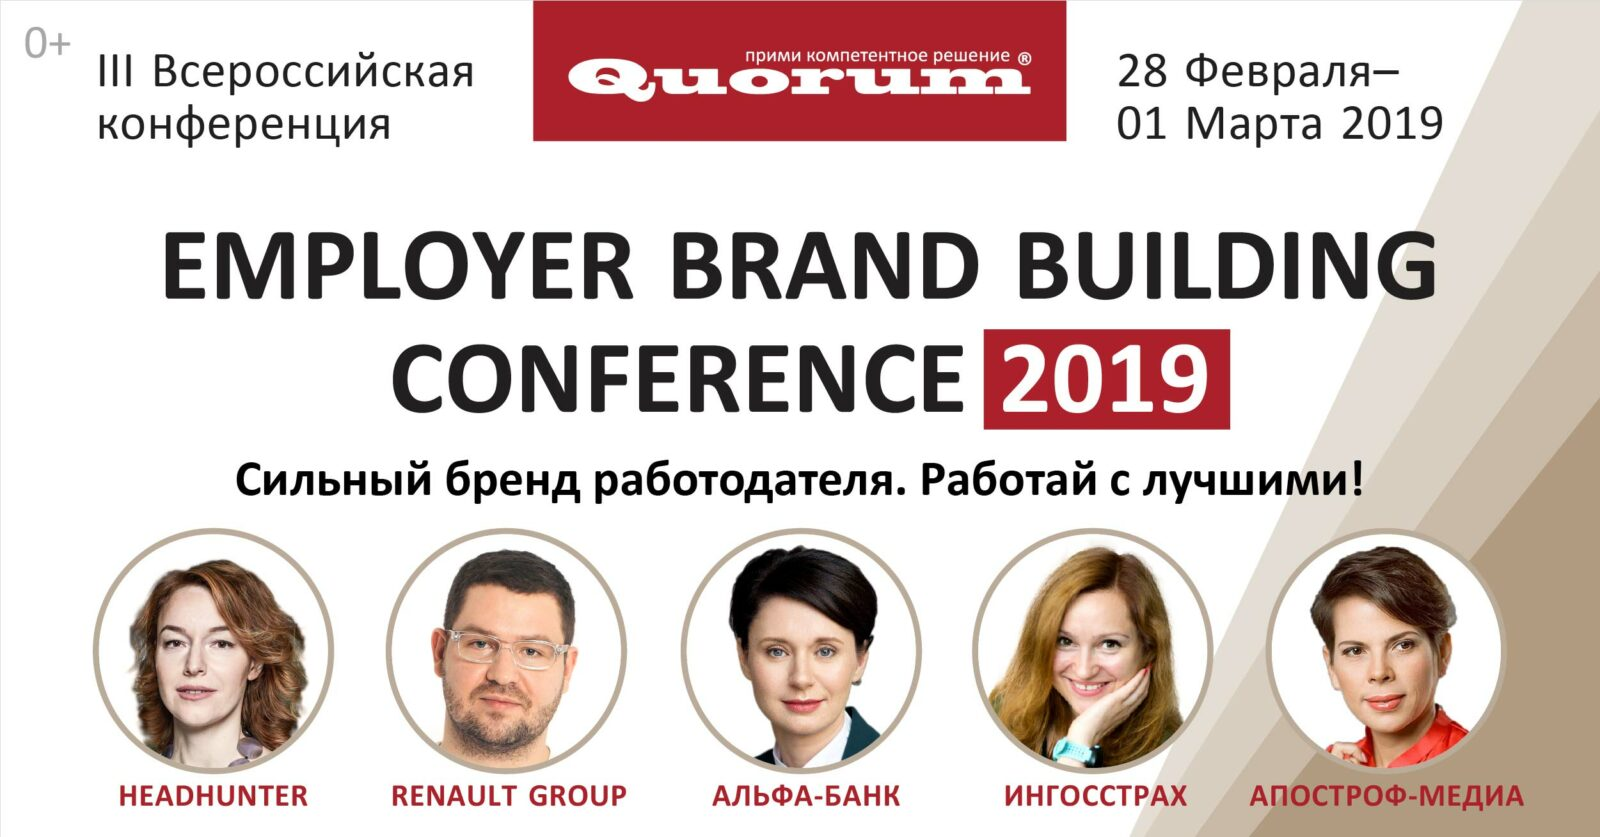 QUORUM EMPLOYER BRAND  BUILDING CONFERENCE